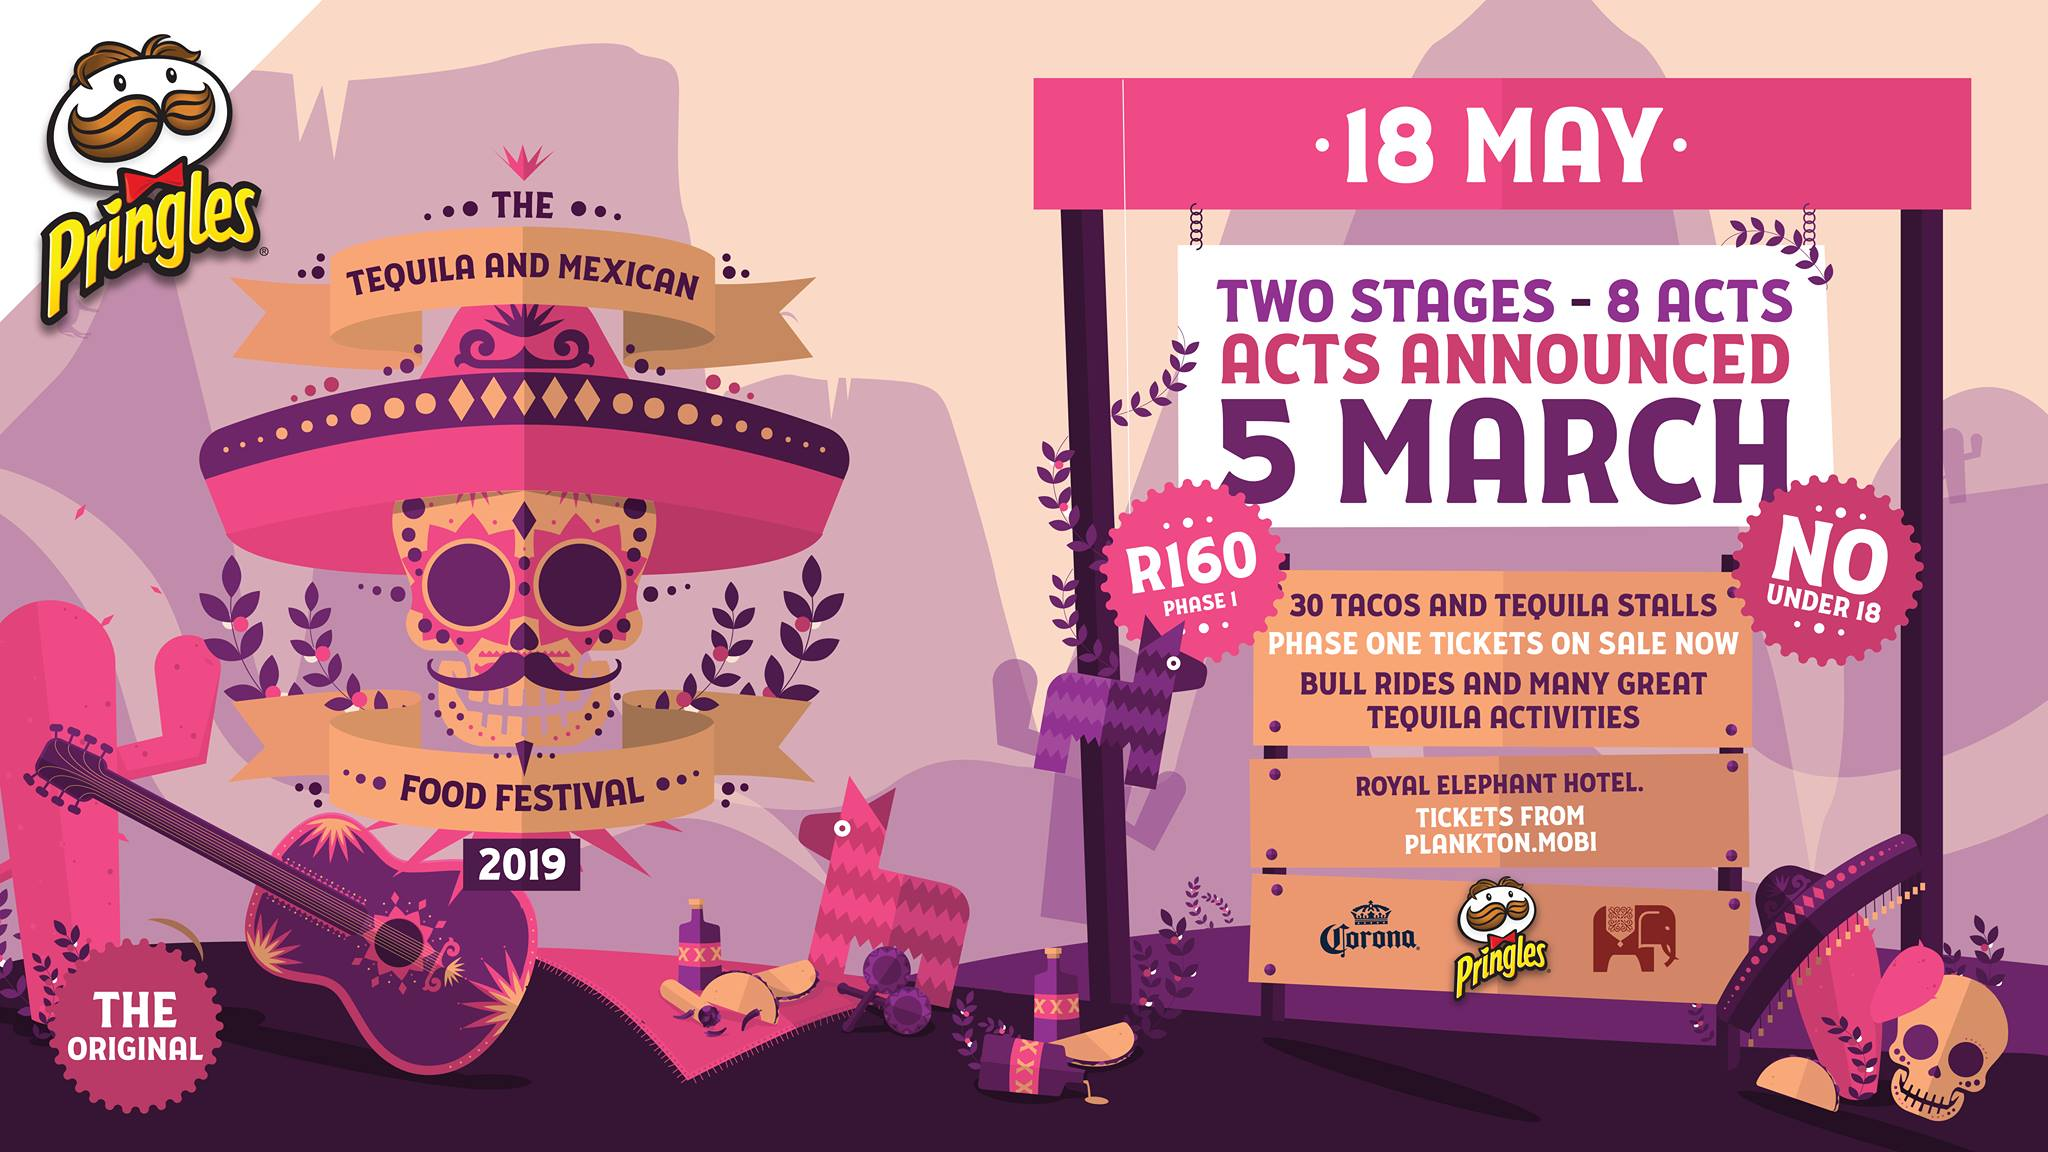 The Tequila & Mexican Food Festival 2019 – 18 May 2019